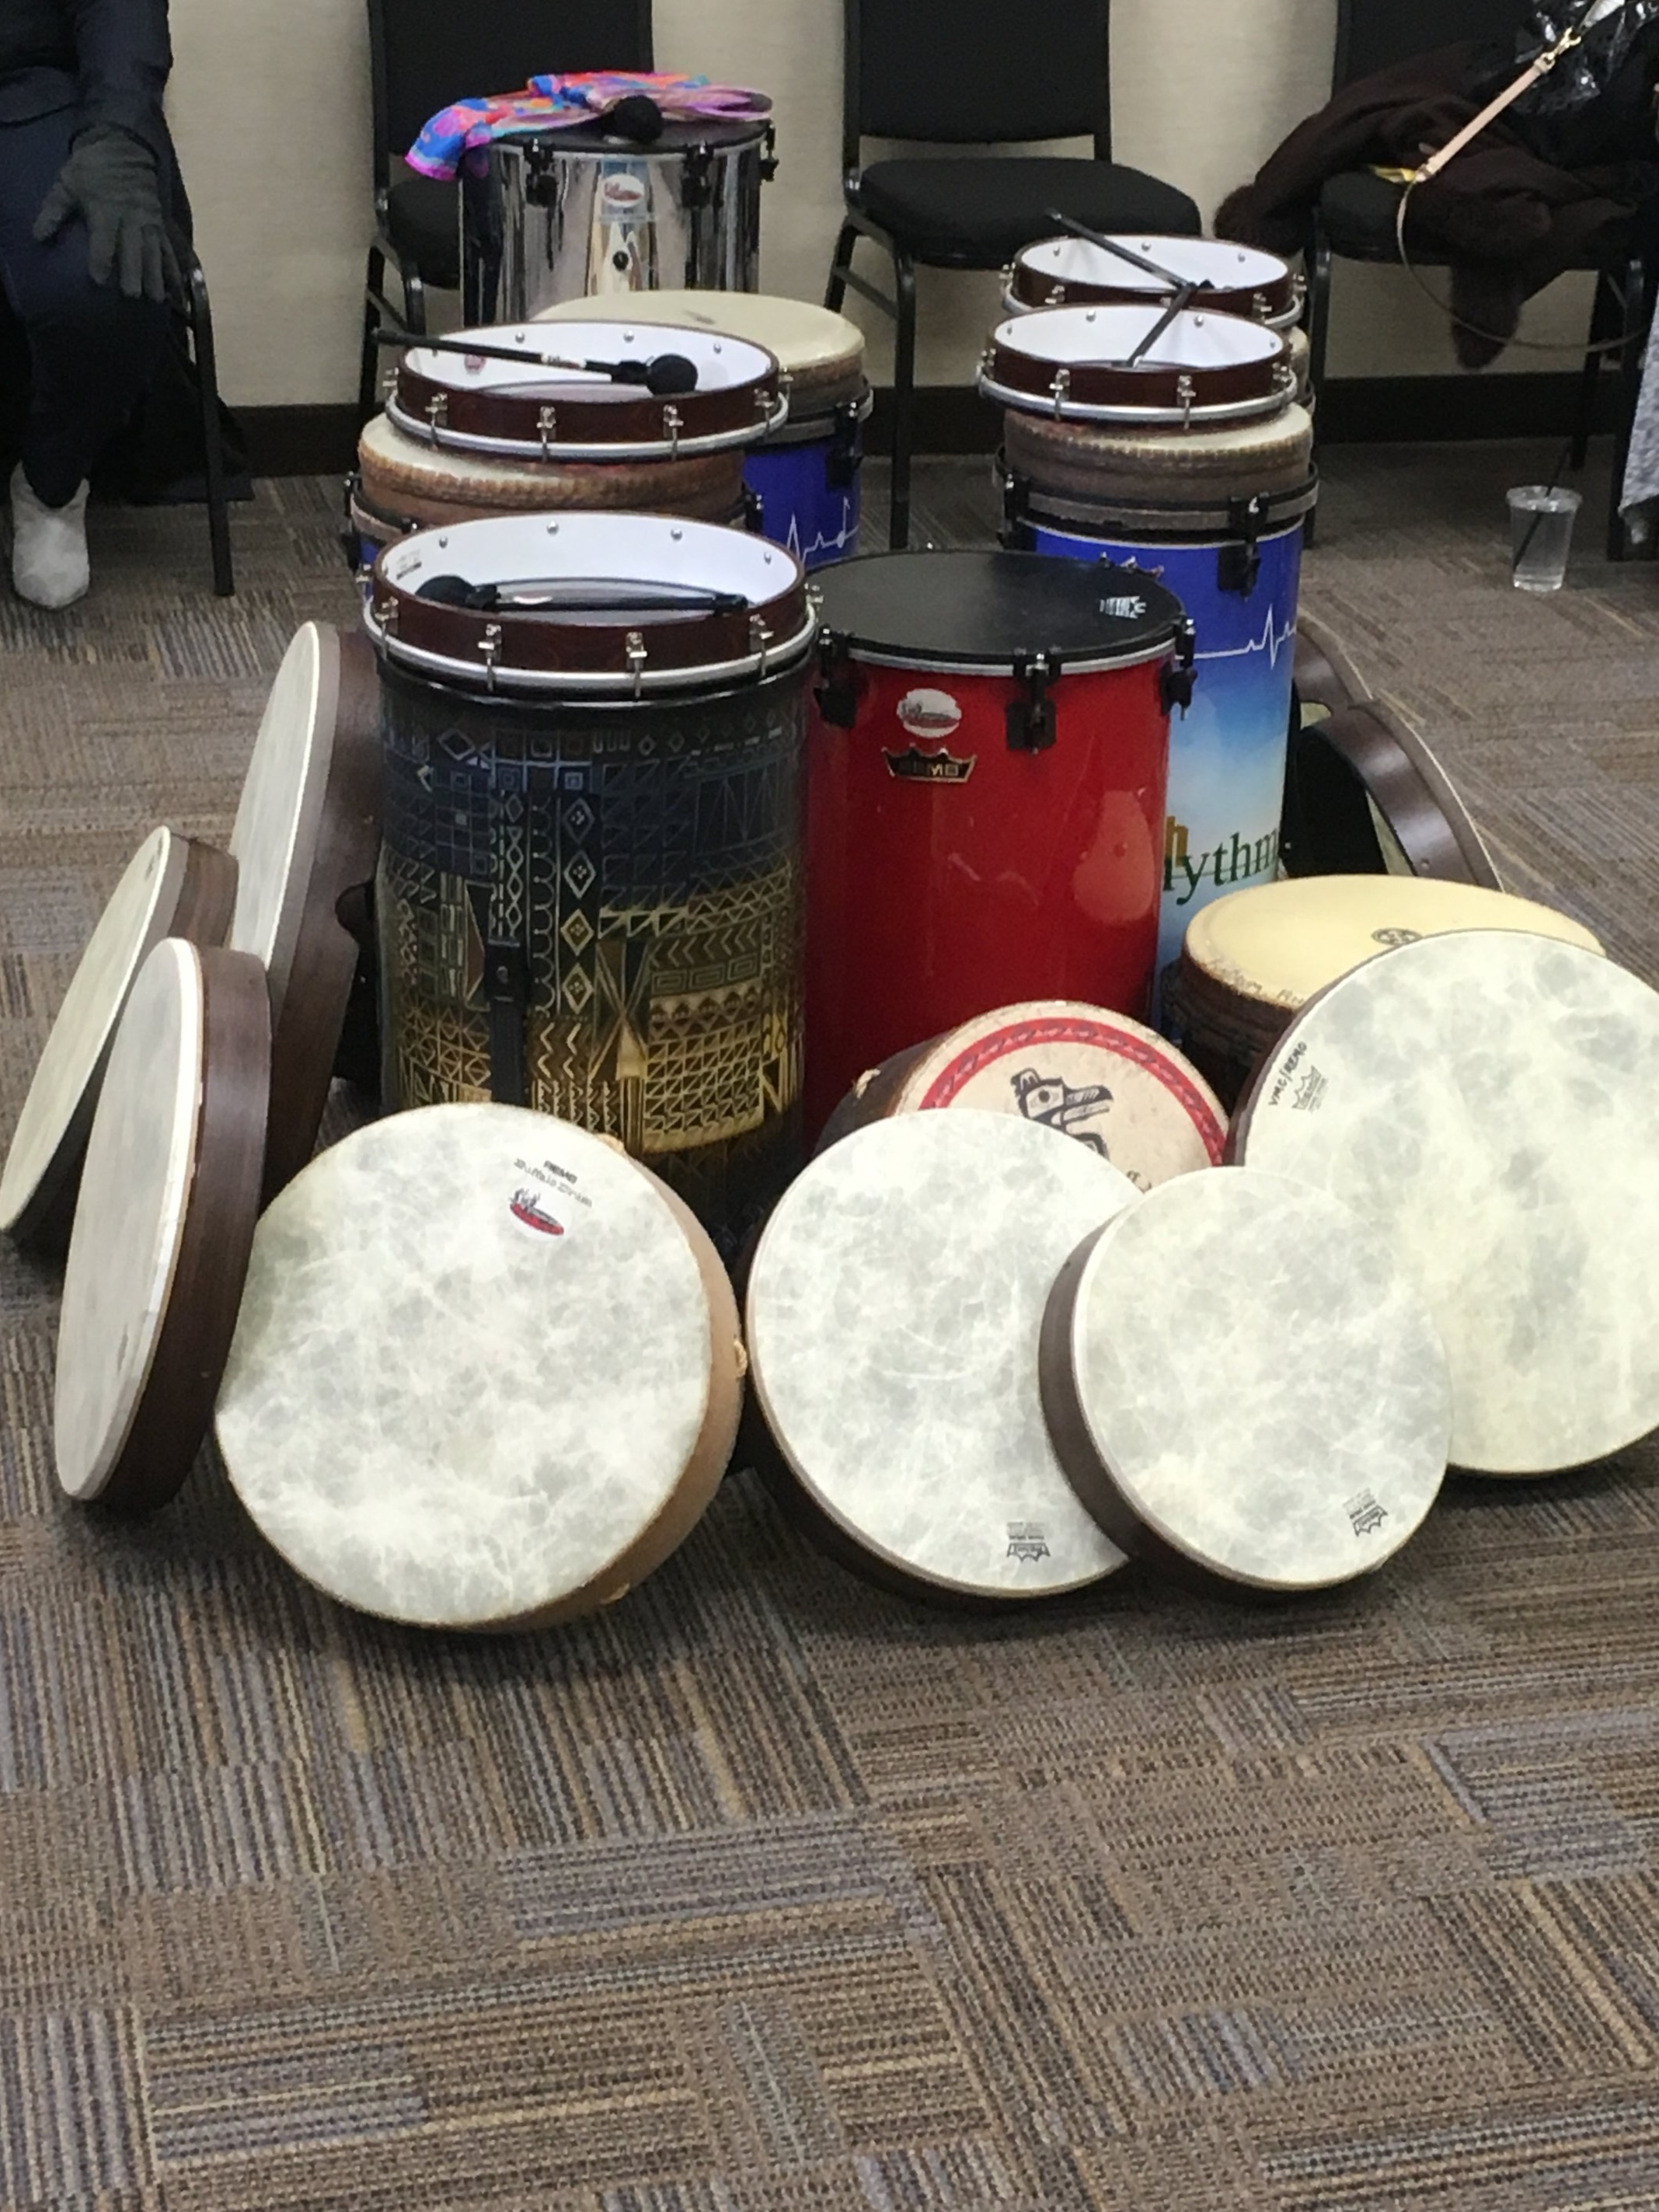 Quality REMO percussion for your drumming pleasure!